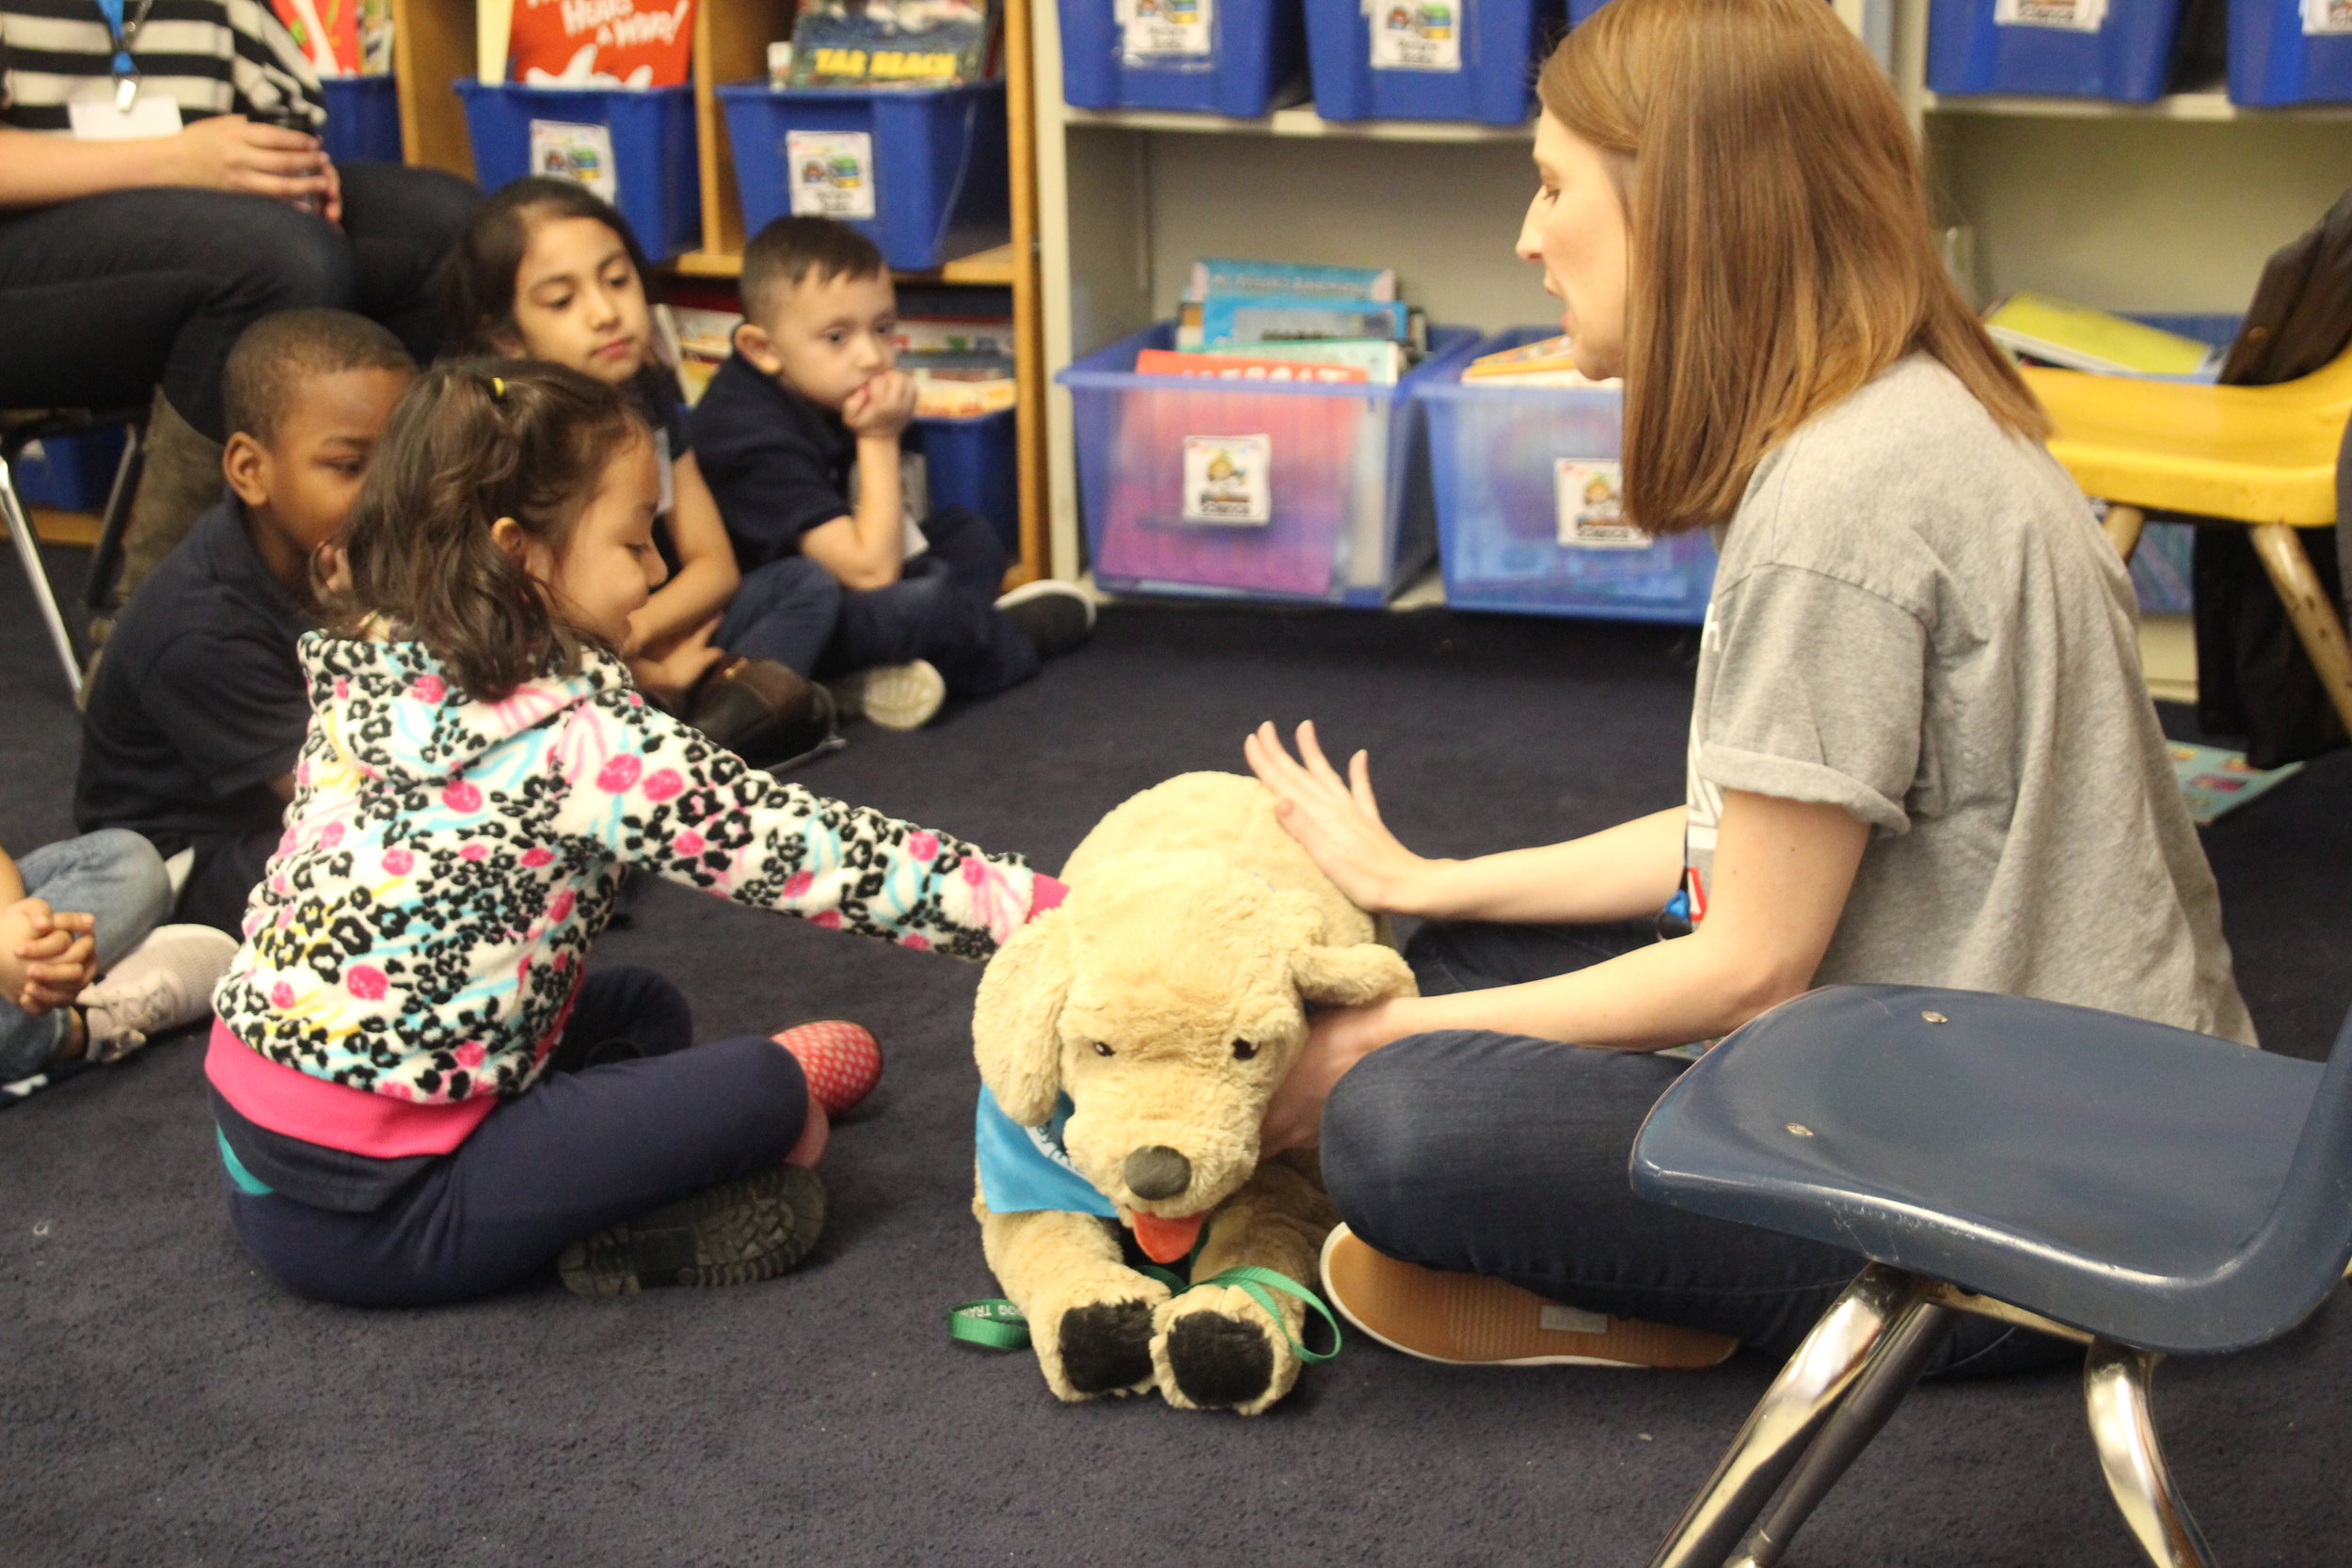 Program Leader Jamie teaches a Kindergarten student how to pet a dog safely using a stuffed animal in the SitStayRead Kindergarten program. (M. O'Brien)